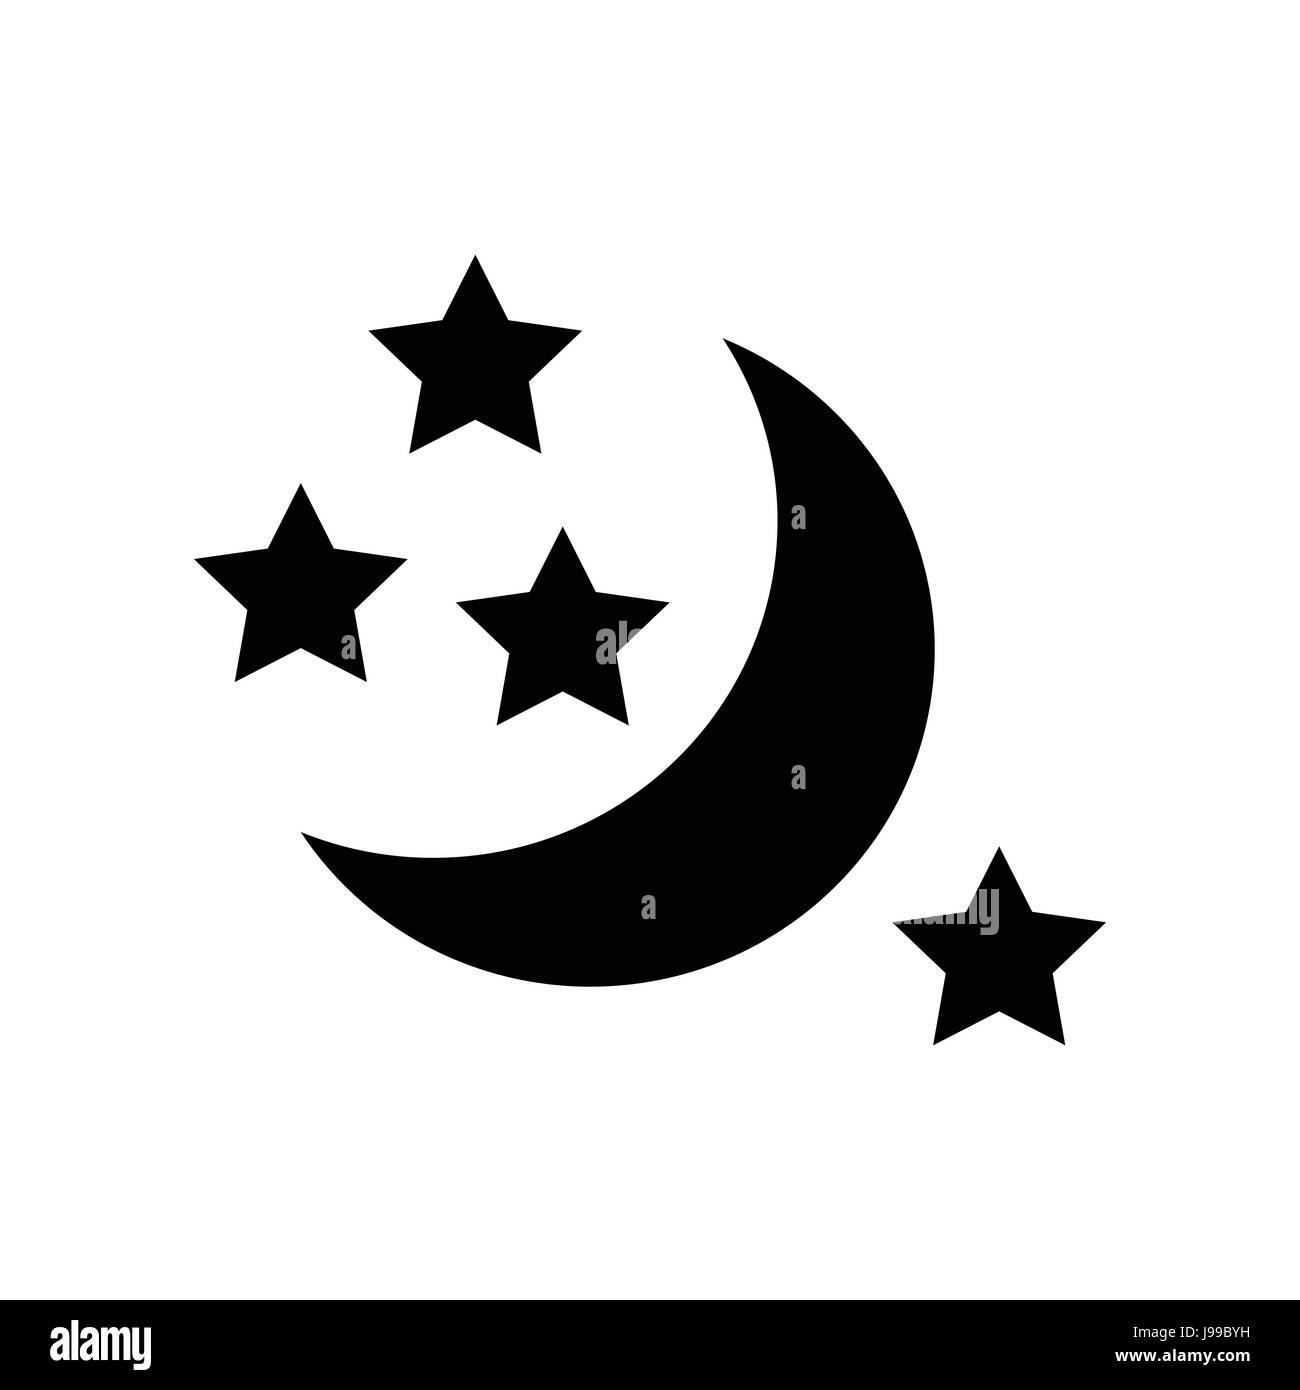 Half moon and stars icon simple style stock vector art half moon and stars icon simple style biocorpaavc